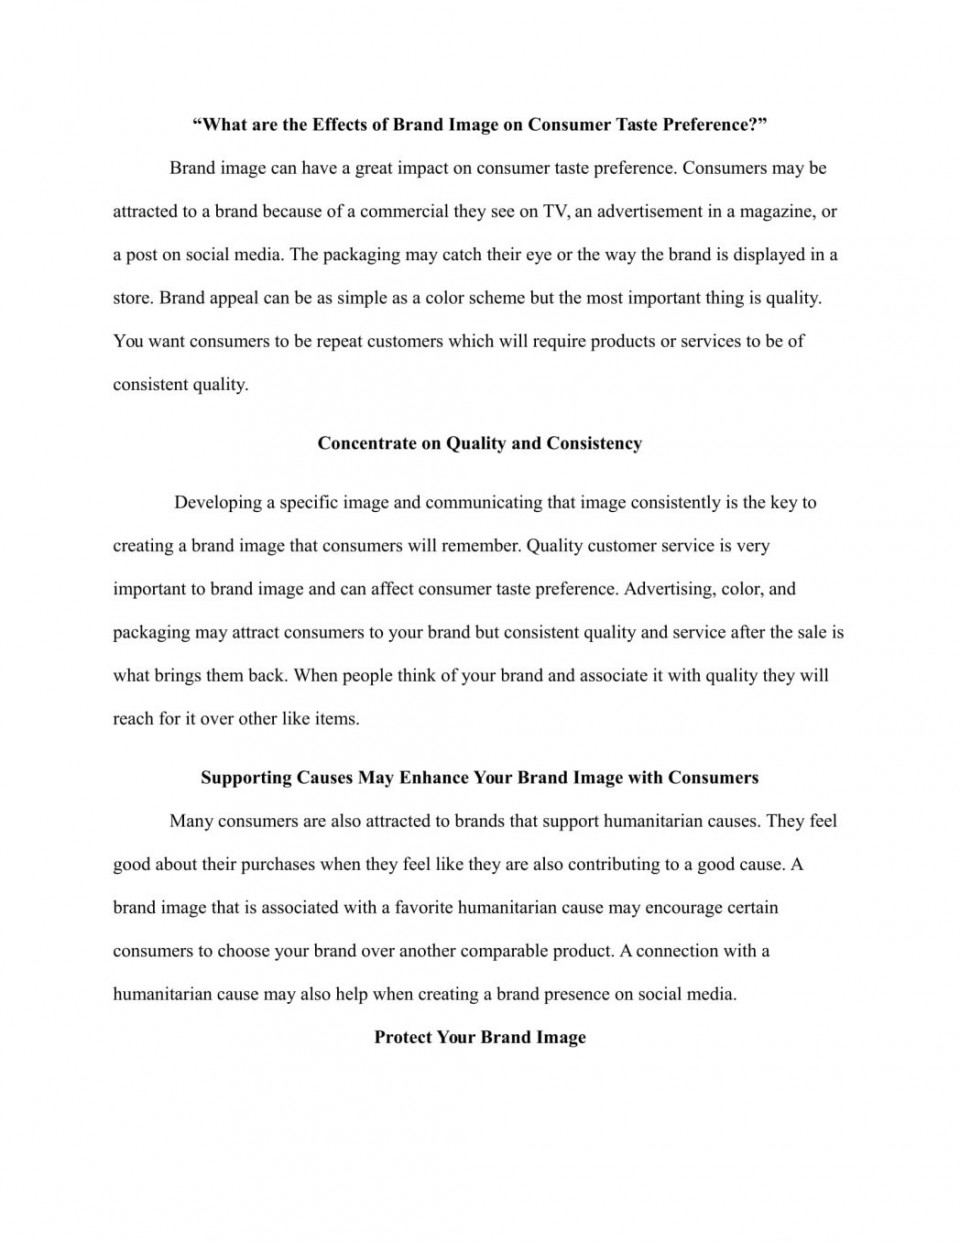 010 College Essay Heading Brand Expositions Engineering Application Expository Sam Margins Sample Personal Format Papers Entrance 1048x1356 Incredible Admissions Example 960